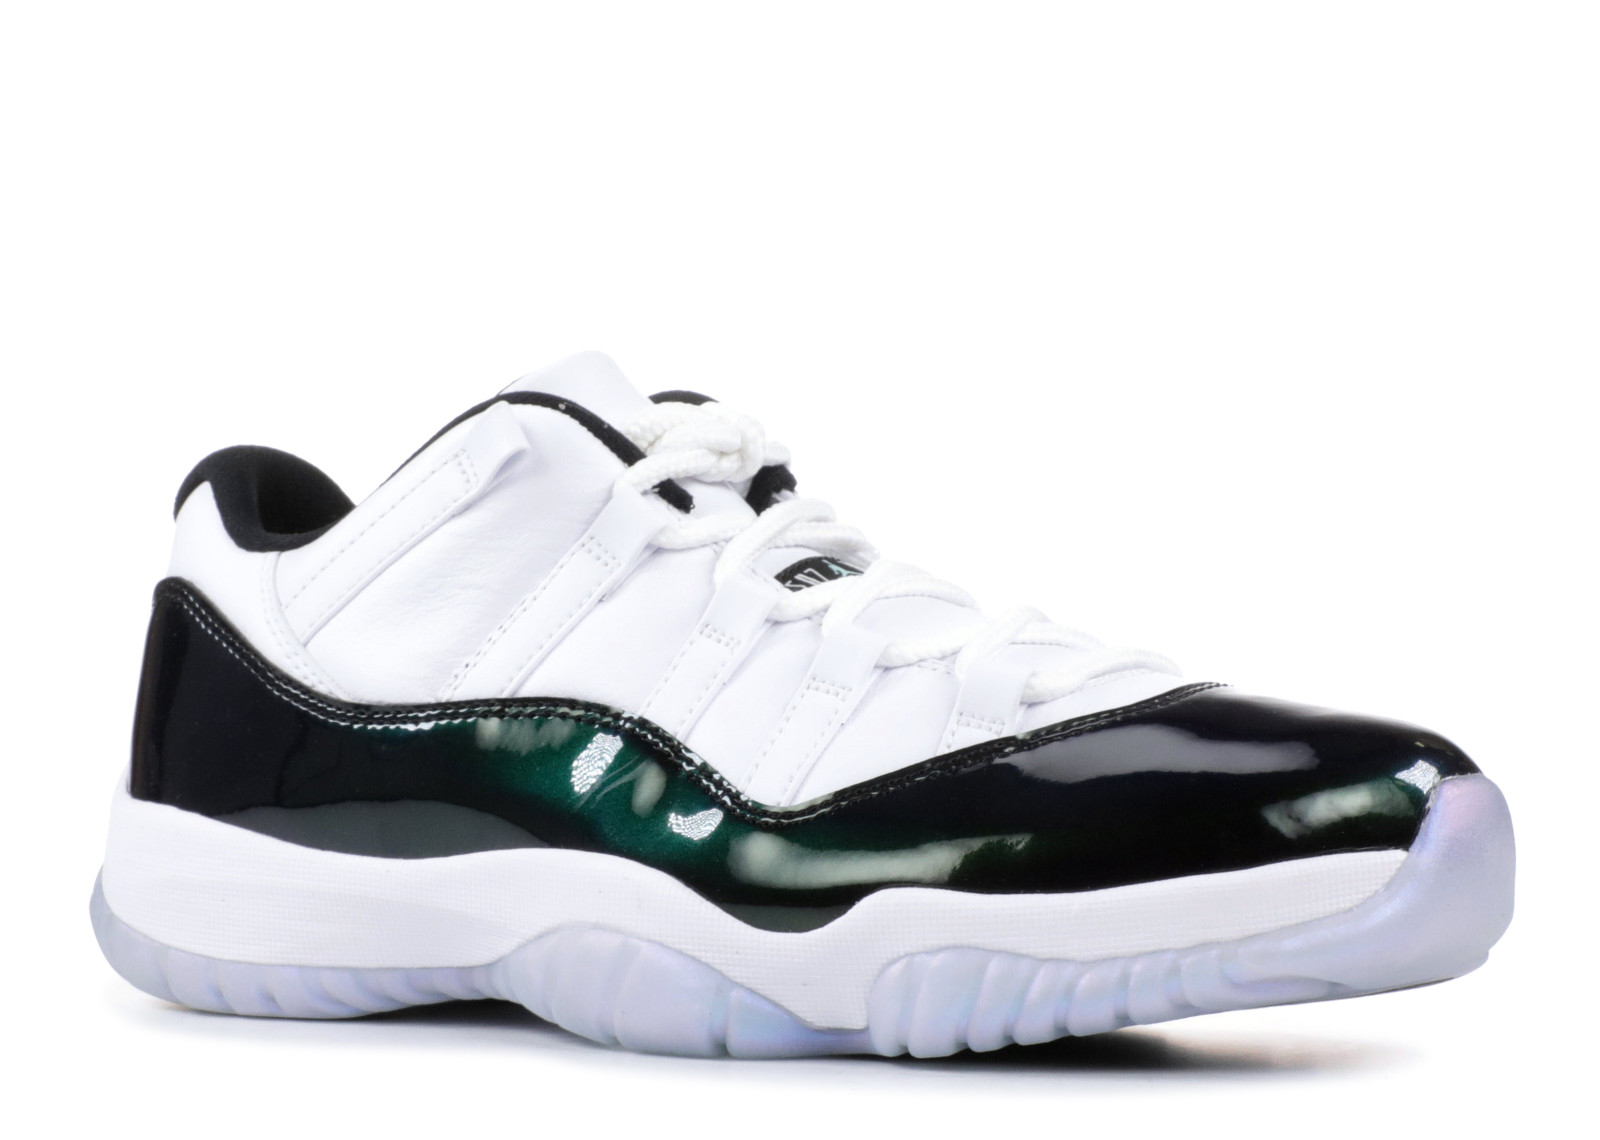 a9029fe44a56 Jordan 11 Retro Low Iridescent - 1